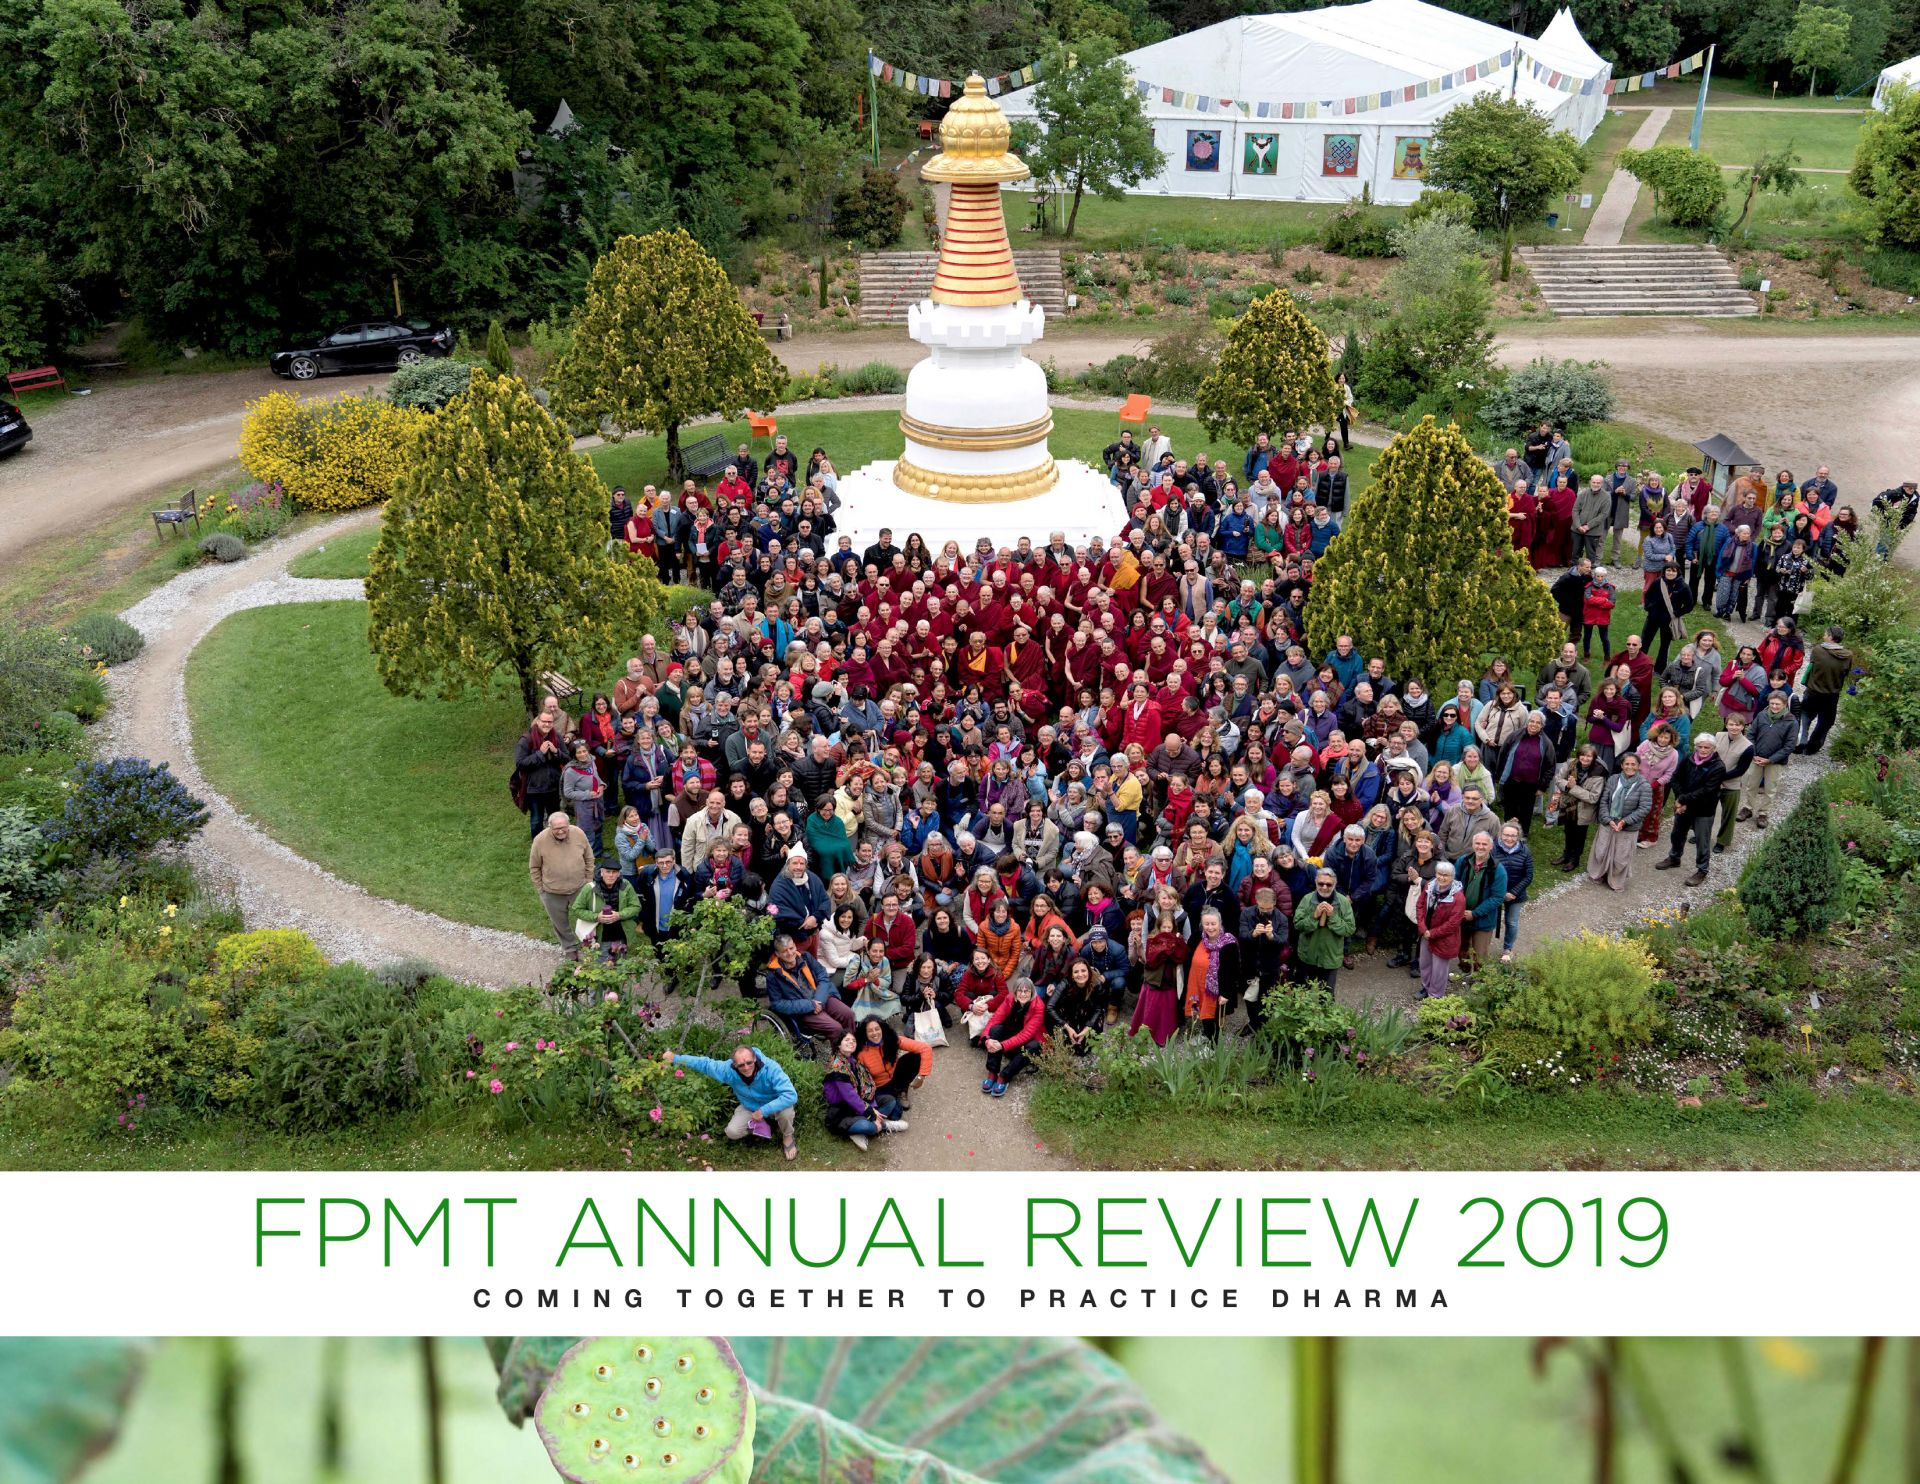 FPMT Annual Review 2019: Coming Together to Practice Dharma